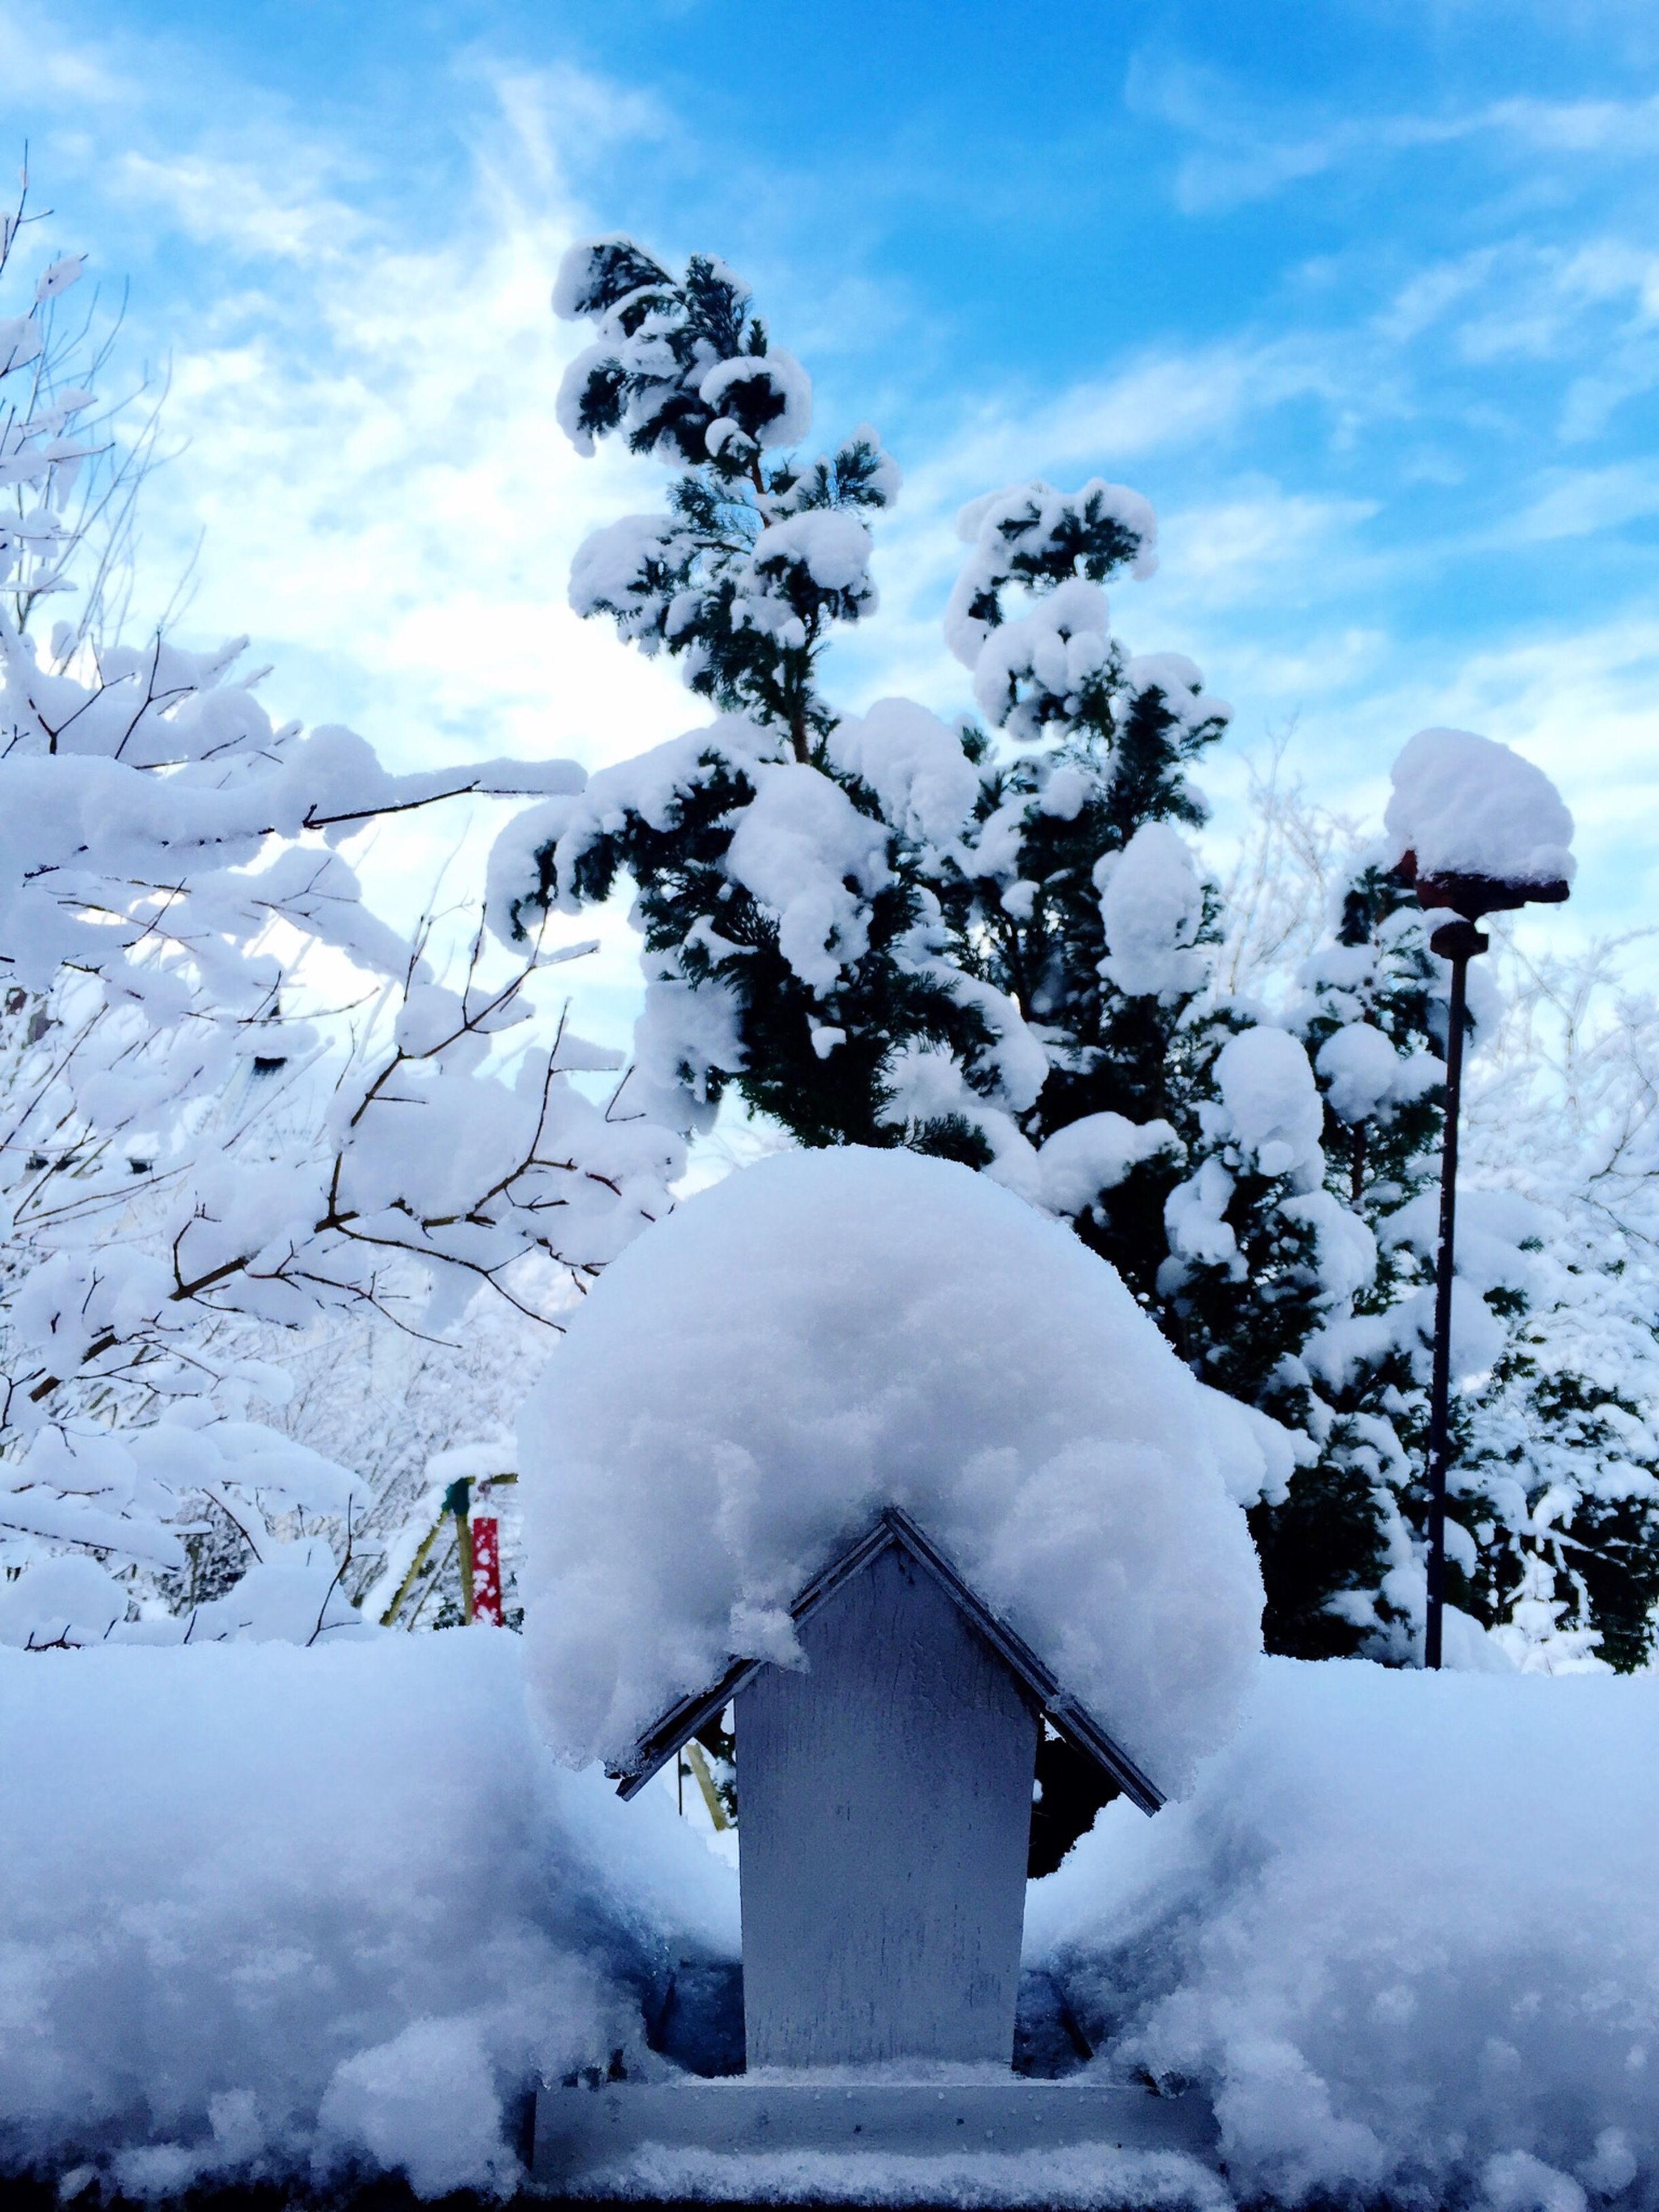 snow, winter, cold temperature, season, weather, covering, sky, white color, frozen, covered, cloud - sky, nature, snowcapped mountain, tree, mountain, day, beauty in nature, low angle view, landscape, snow covered